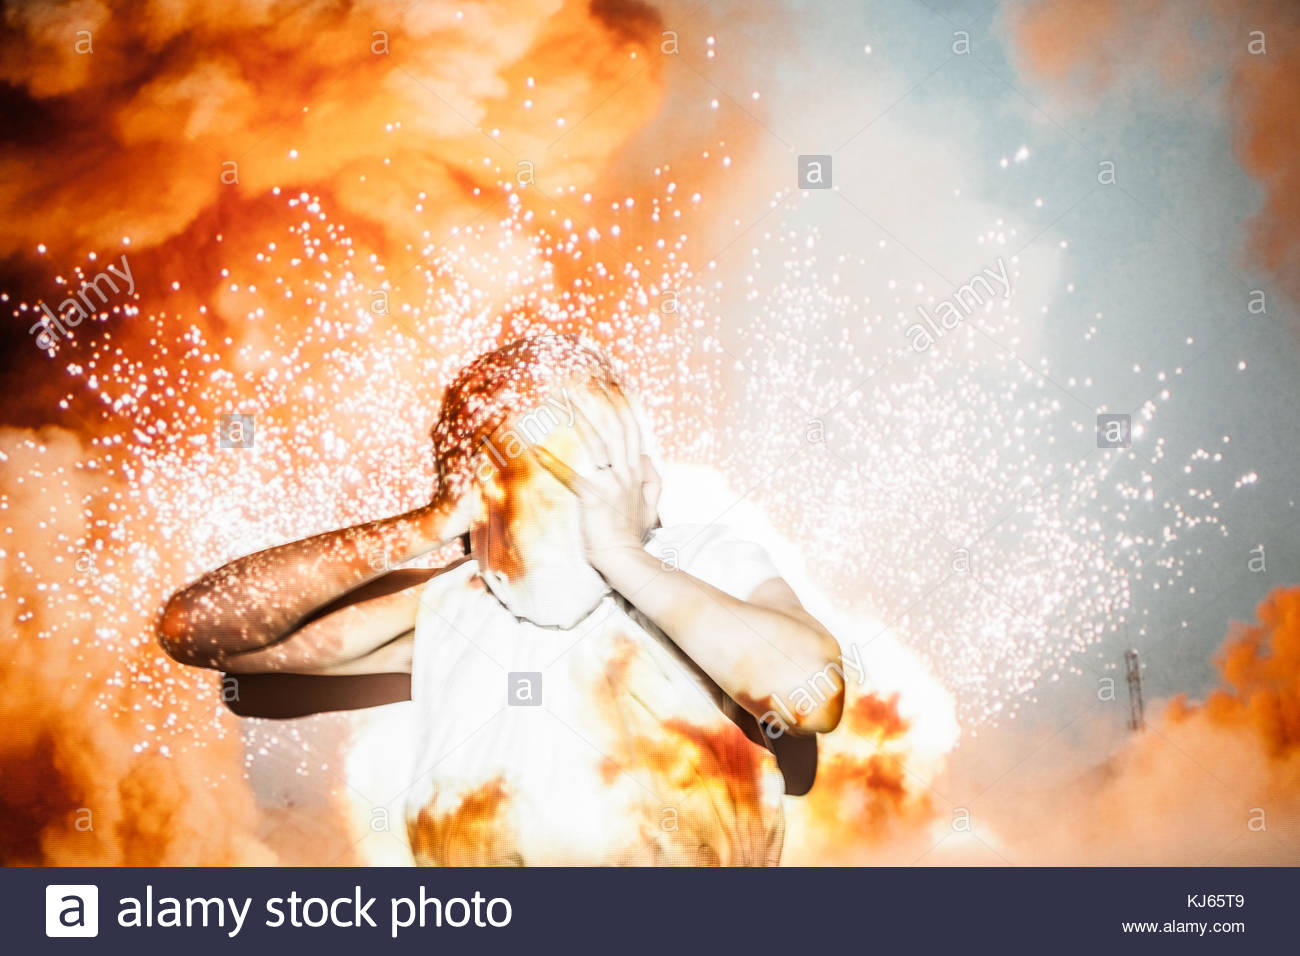 Person against projector background Stock Photo